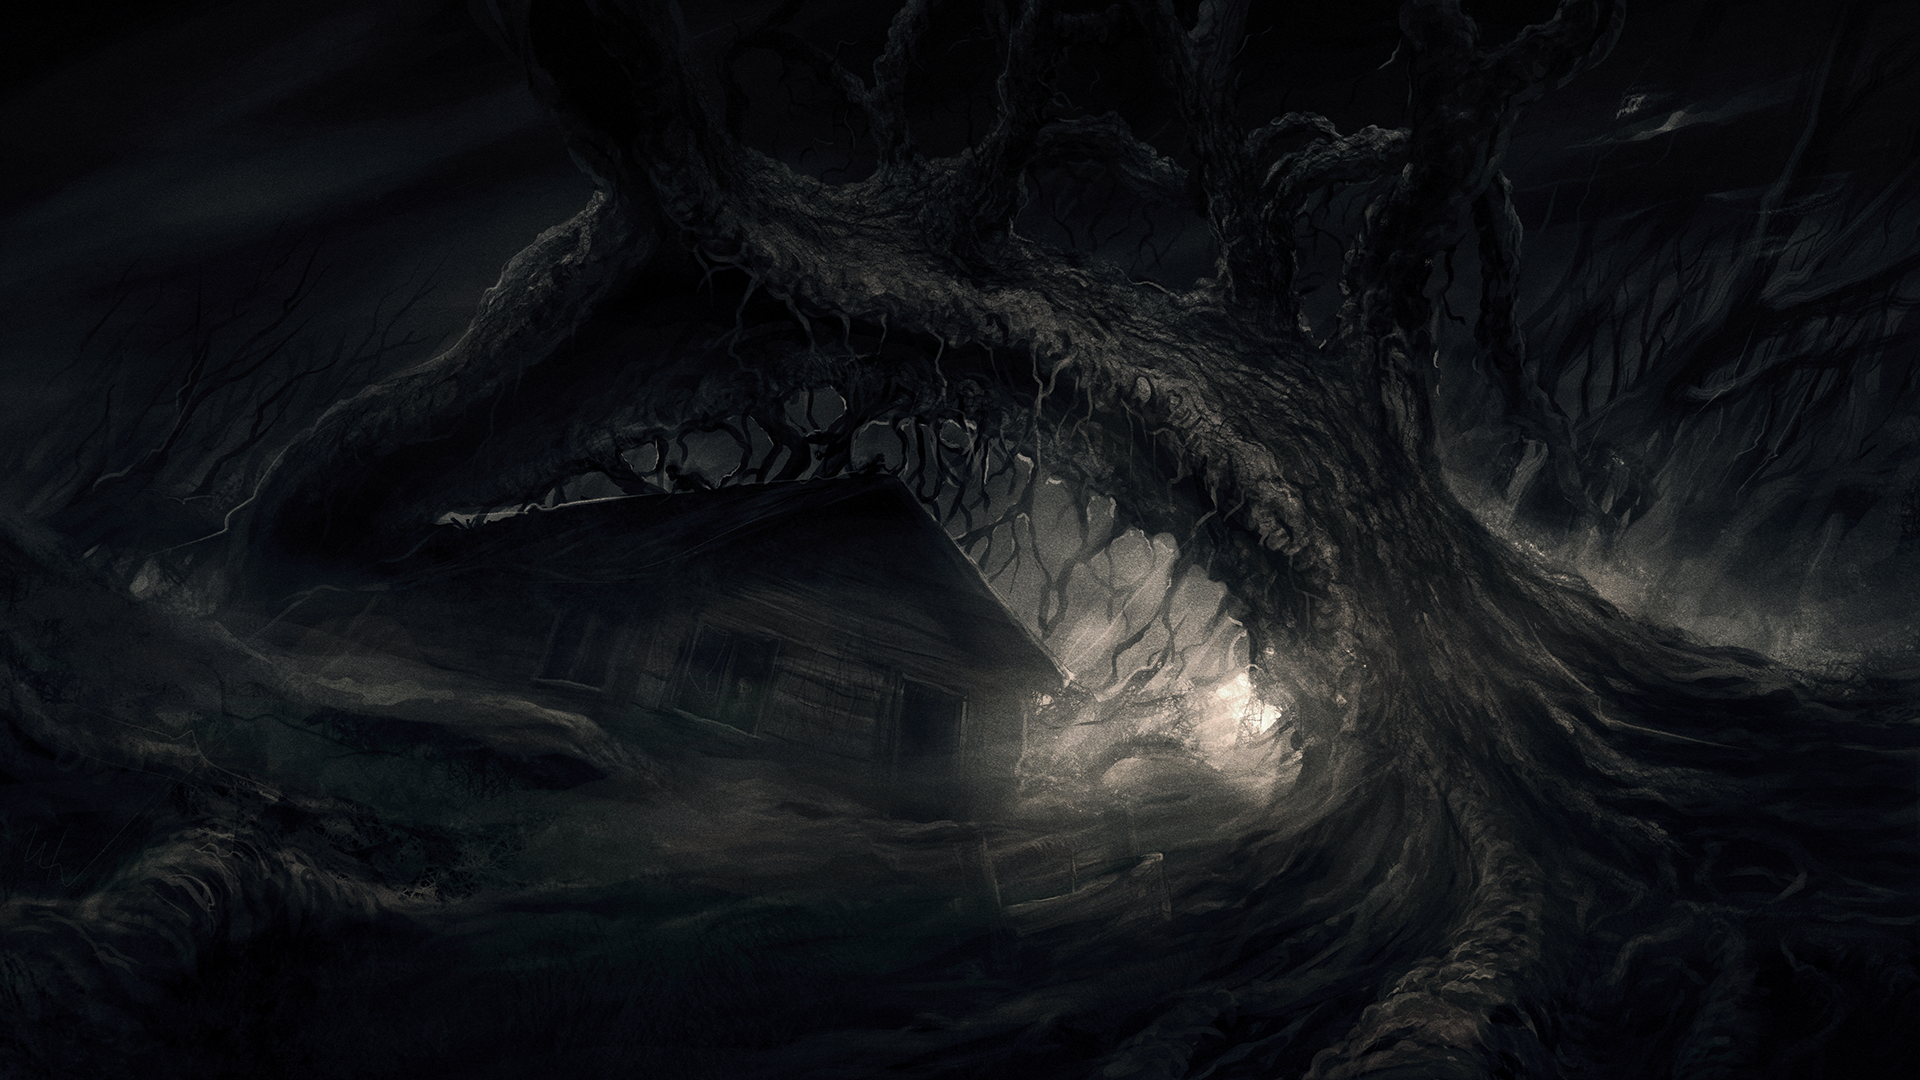 Dark woods picture hd dark woods picture dark woods pictures hd - Concept Art